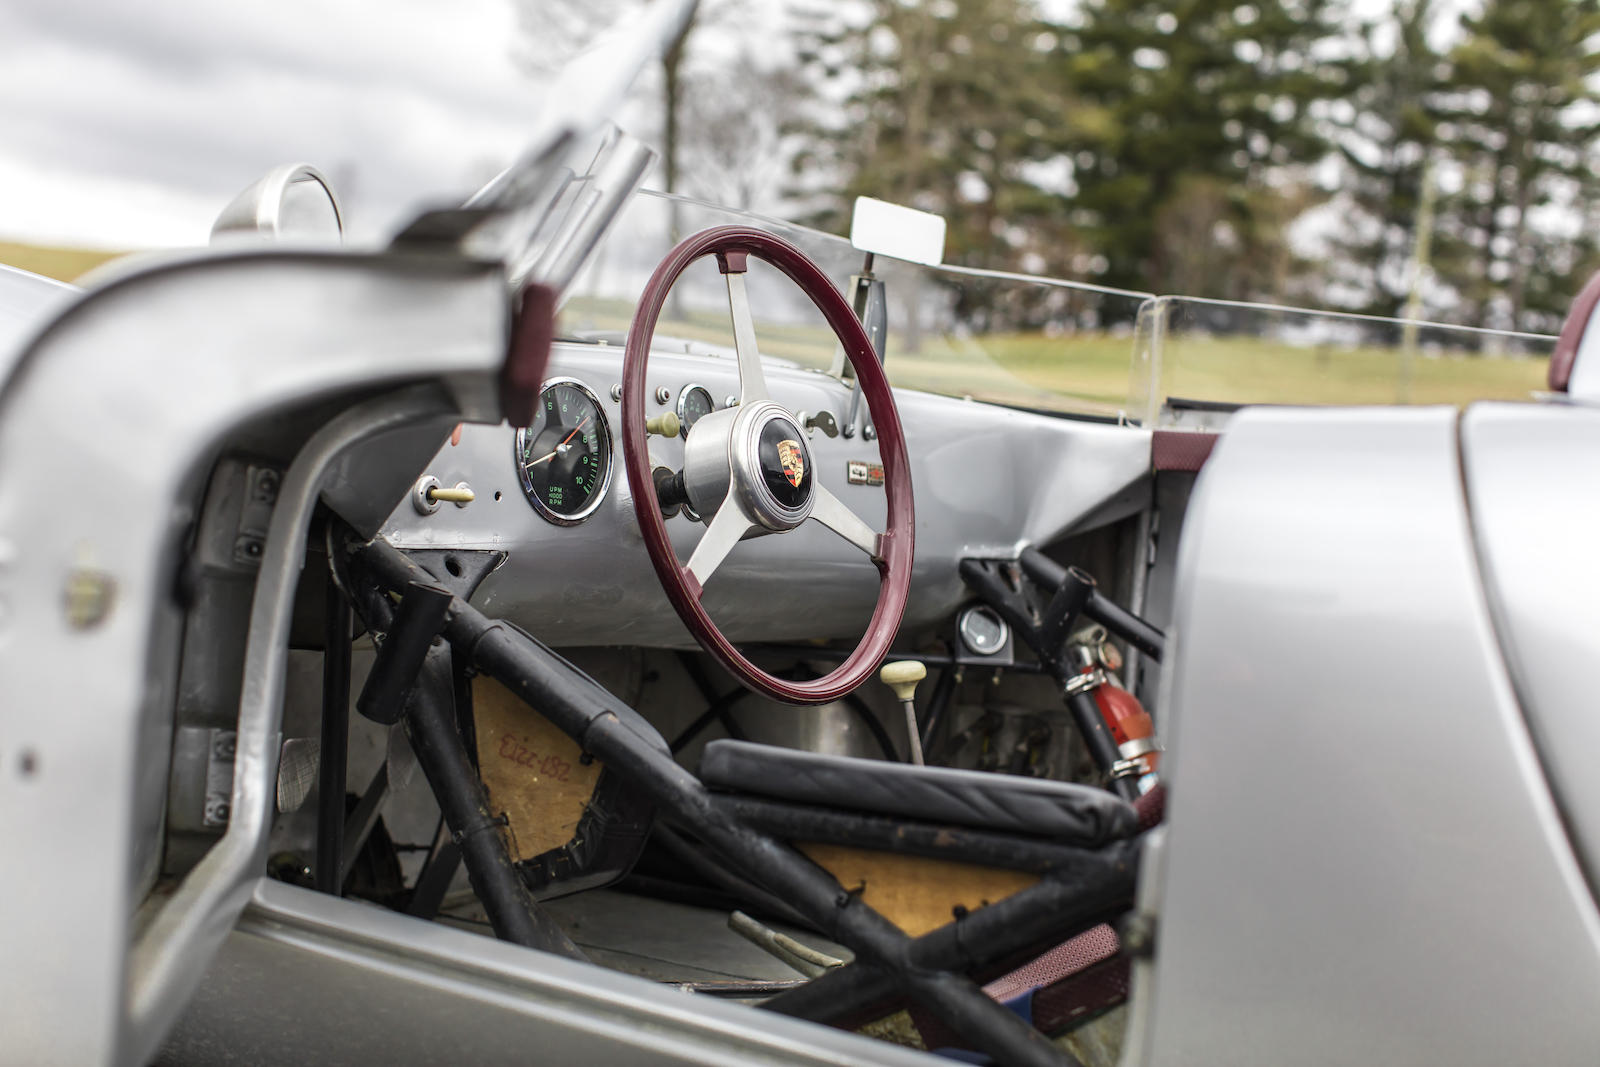 Silver Porsche 718 RSK Spyder Race Car interior cockpit